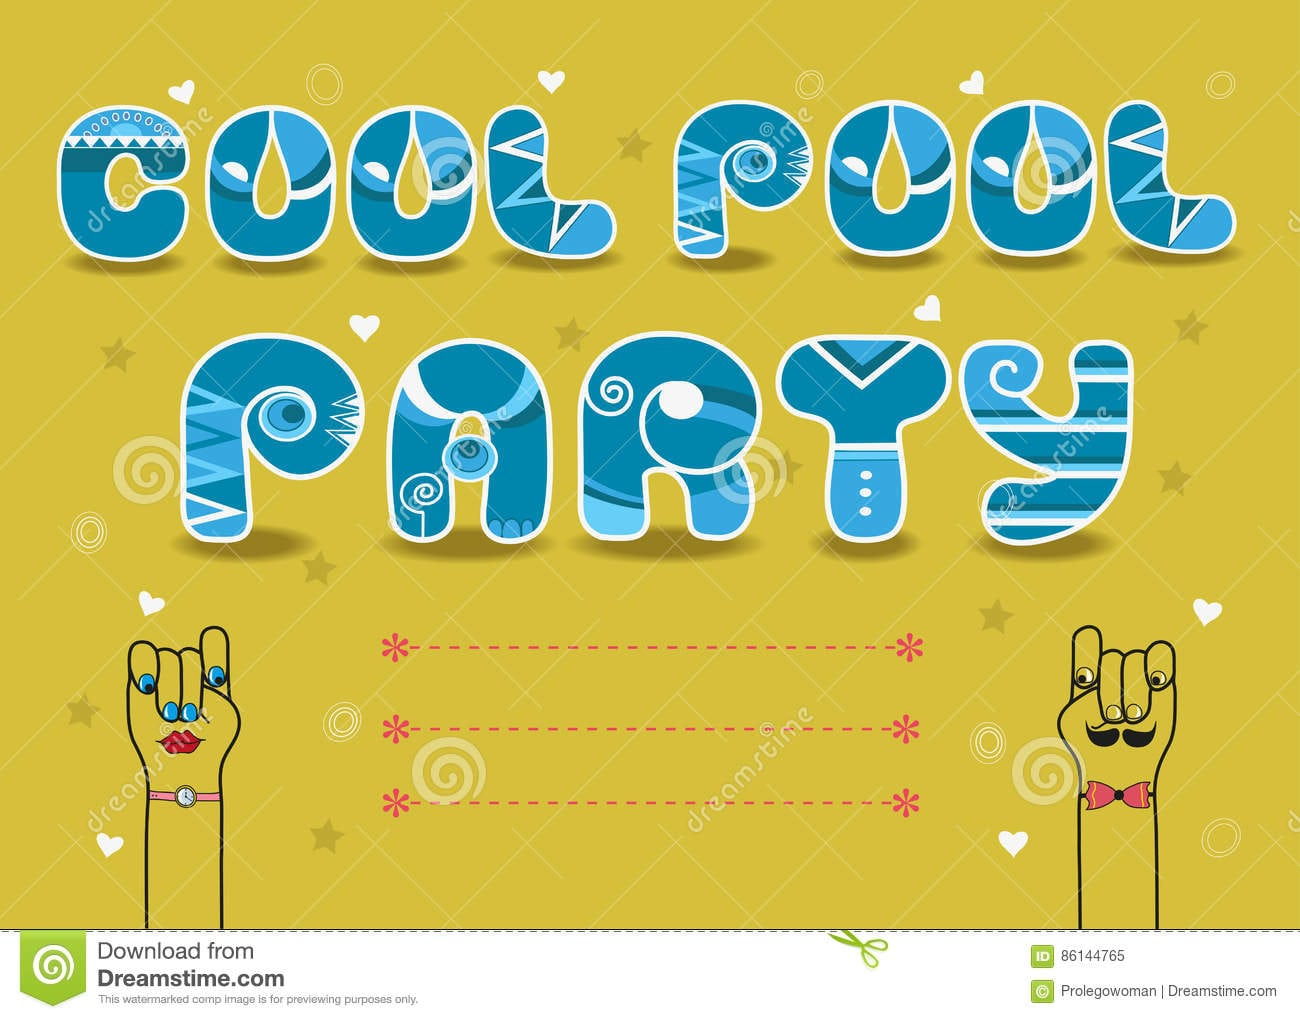 Cool Pool Party, Invitation Card Stock Illustration